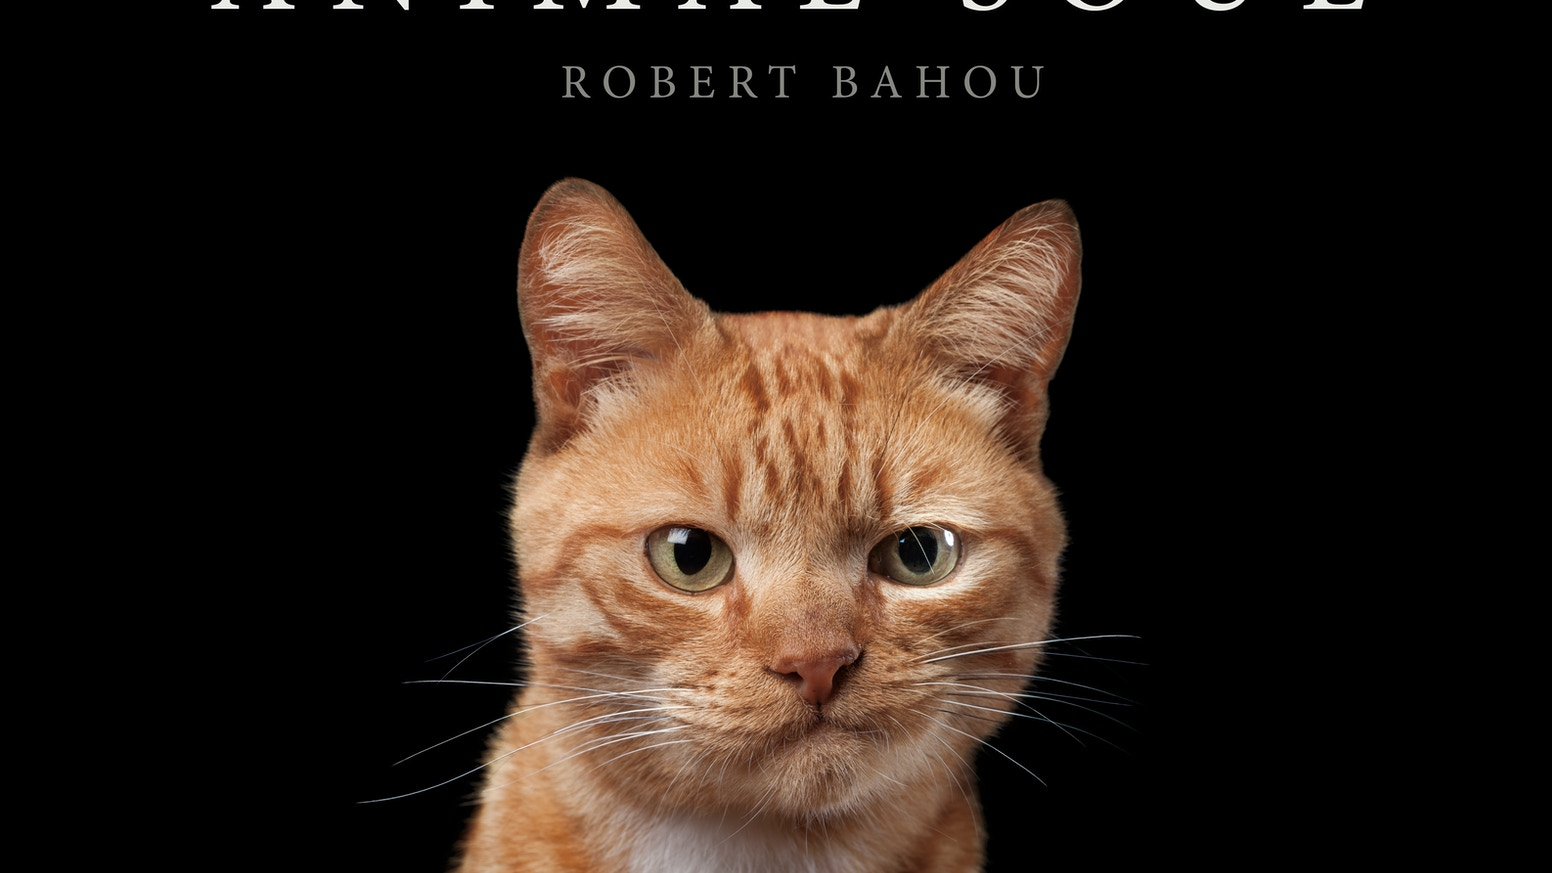 A coffee-table book of close and personal animal portraits by award-winning photographer Robert Bahou.